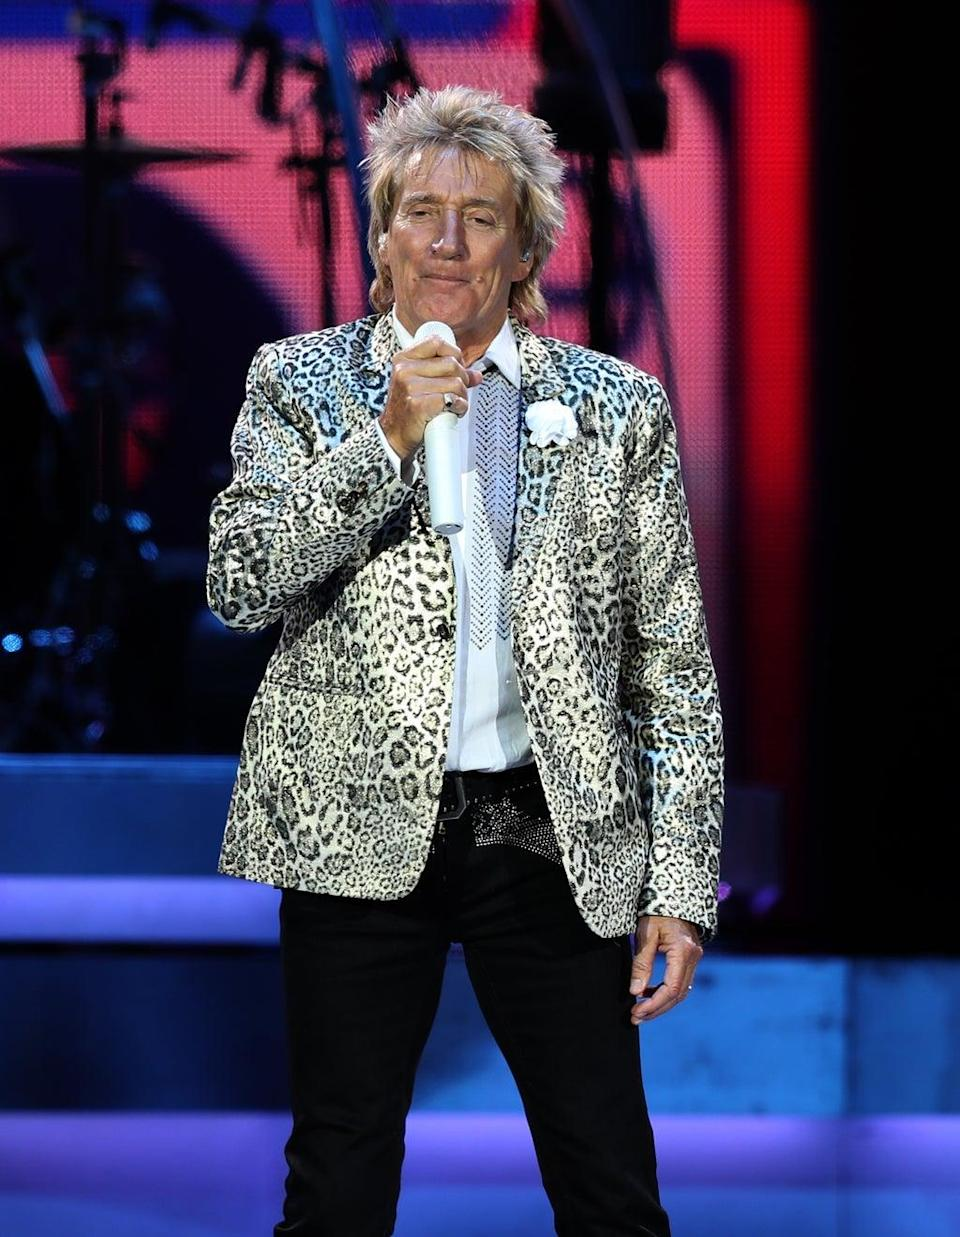 Sir Rod Stewart's alleged assault case in Florida is drawing to a conclusion after almost two years, with the singer reaching an agreement with his accuser, court records show (Simon Cooper/PA) (PA Archive)